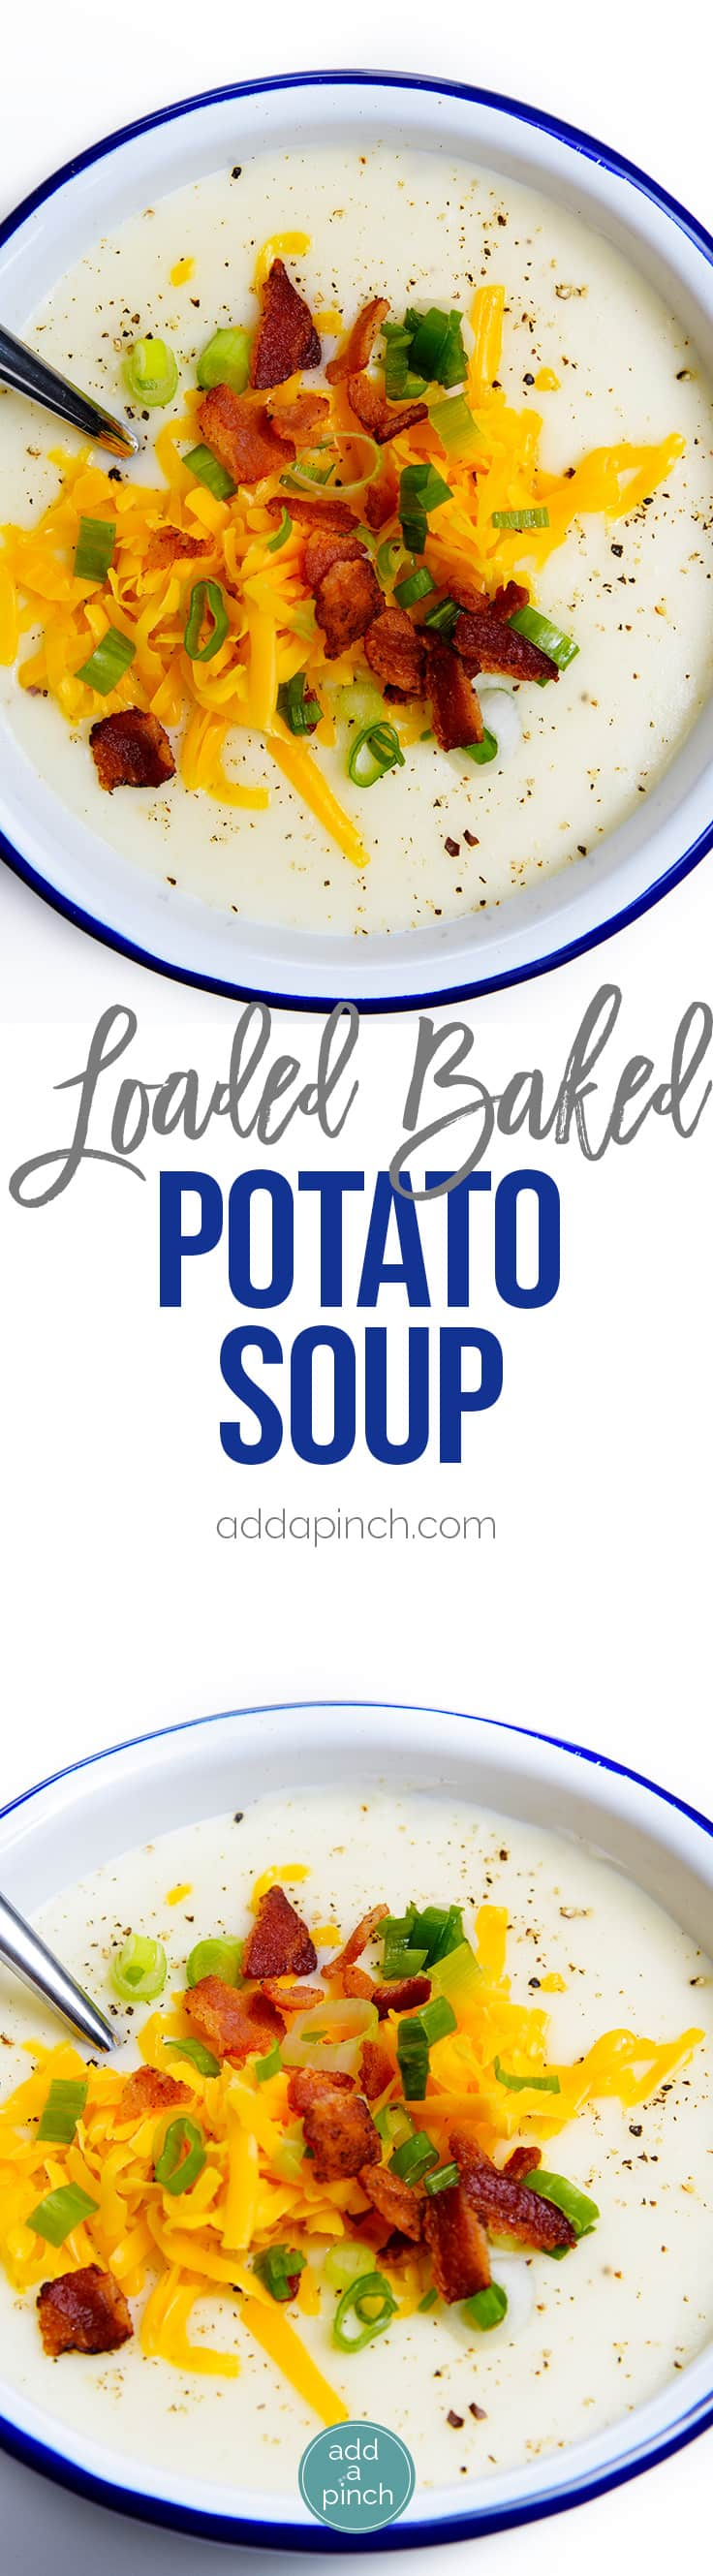 Loaded Baked Potato Soup Recipe - Loaded baked potato soup makes a warm, comforting potato soup recipe. Made with baked potatoes blended into a creamy soup and topped with your potato bar favorites! // addapinch.com